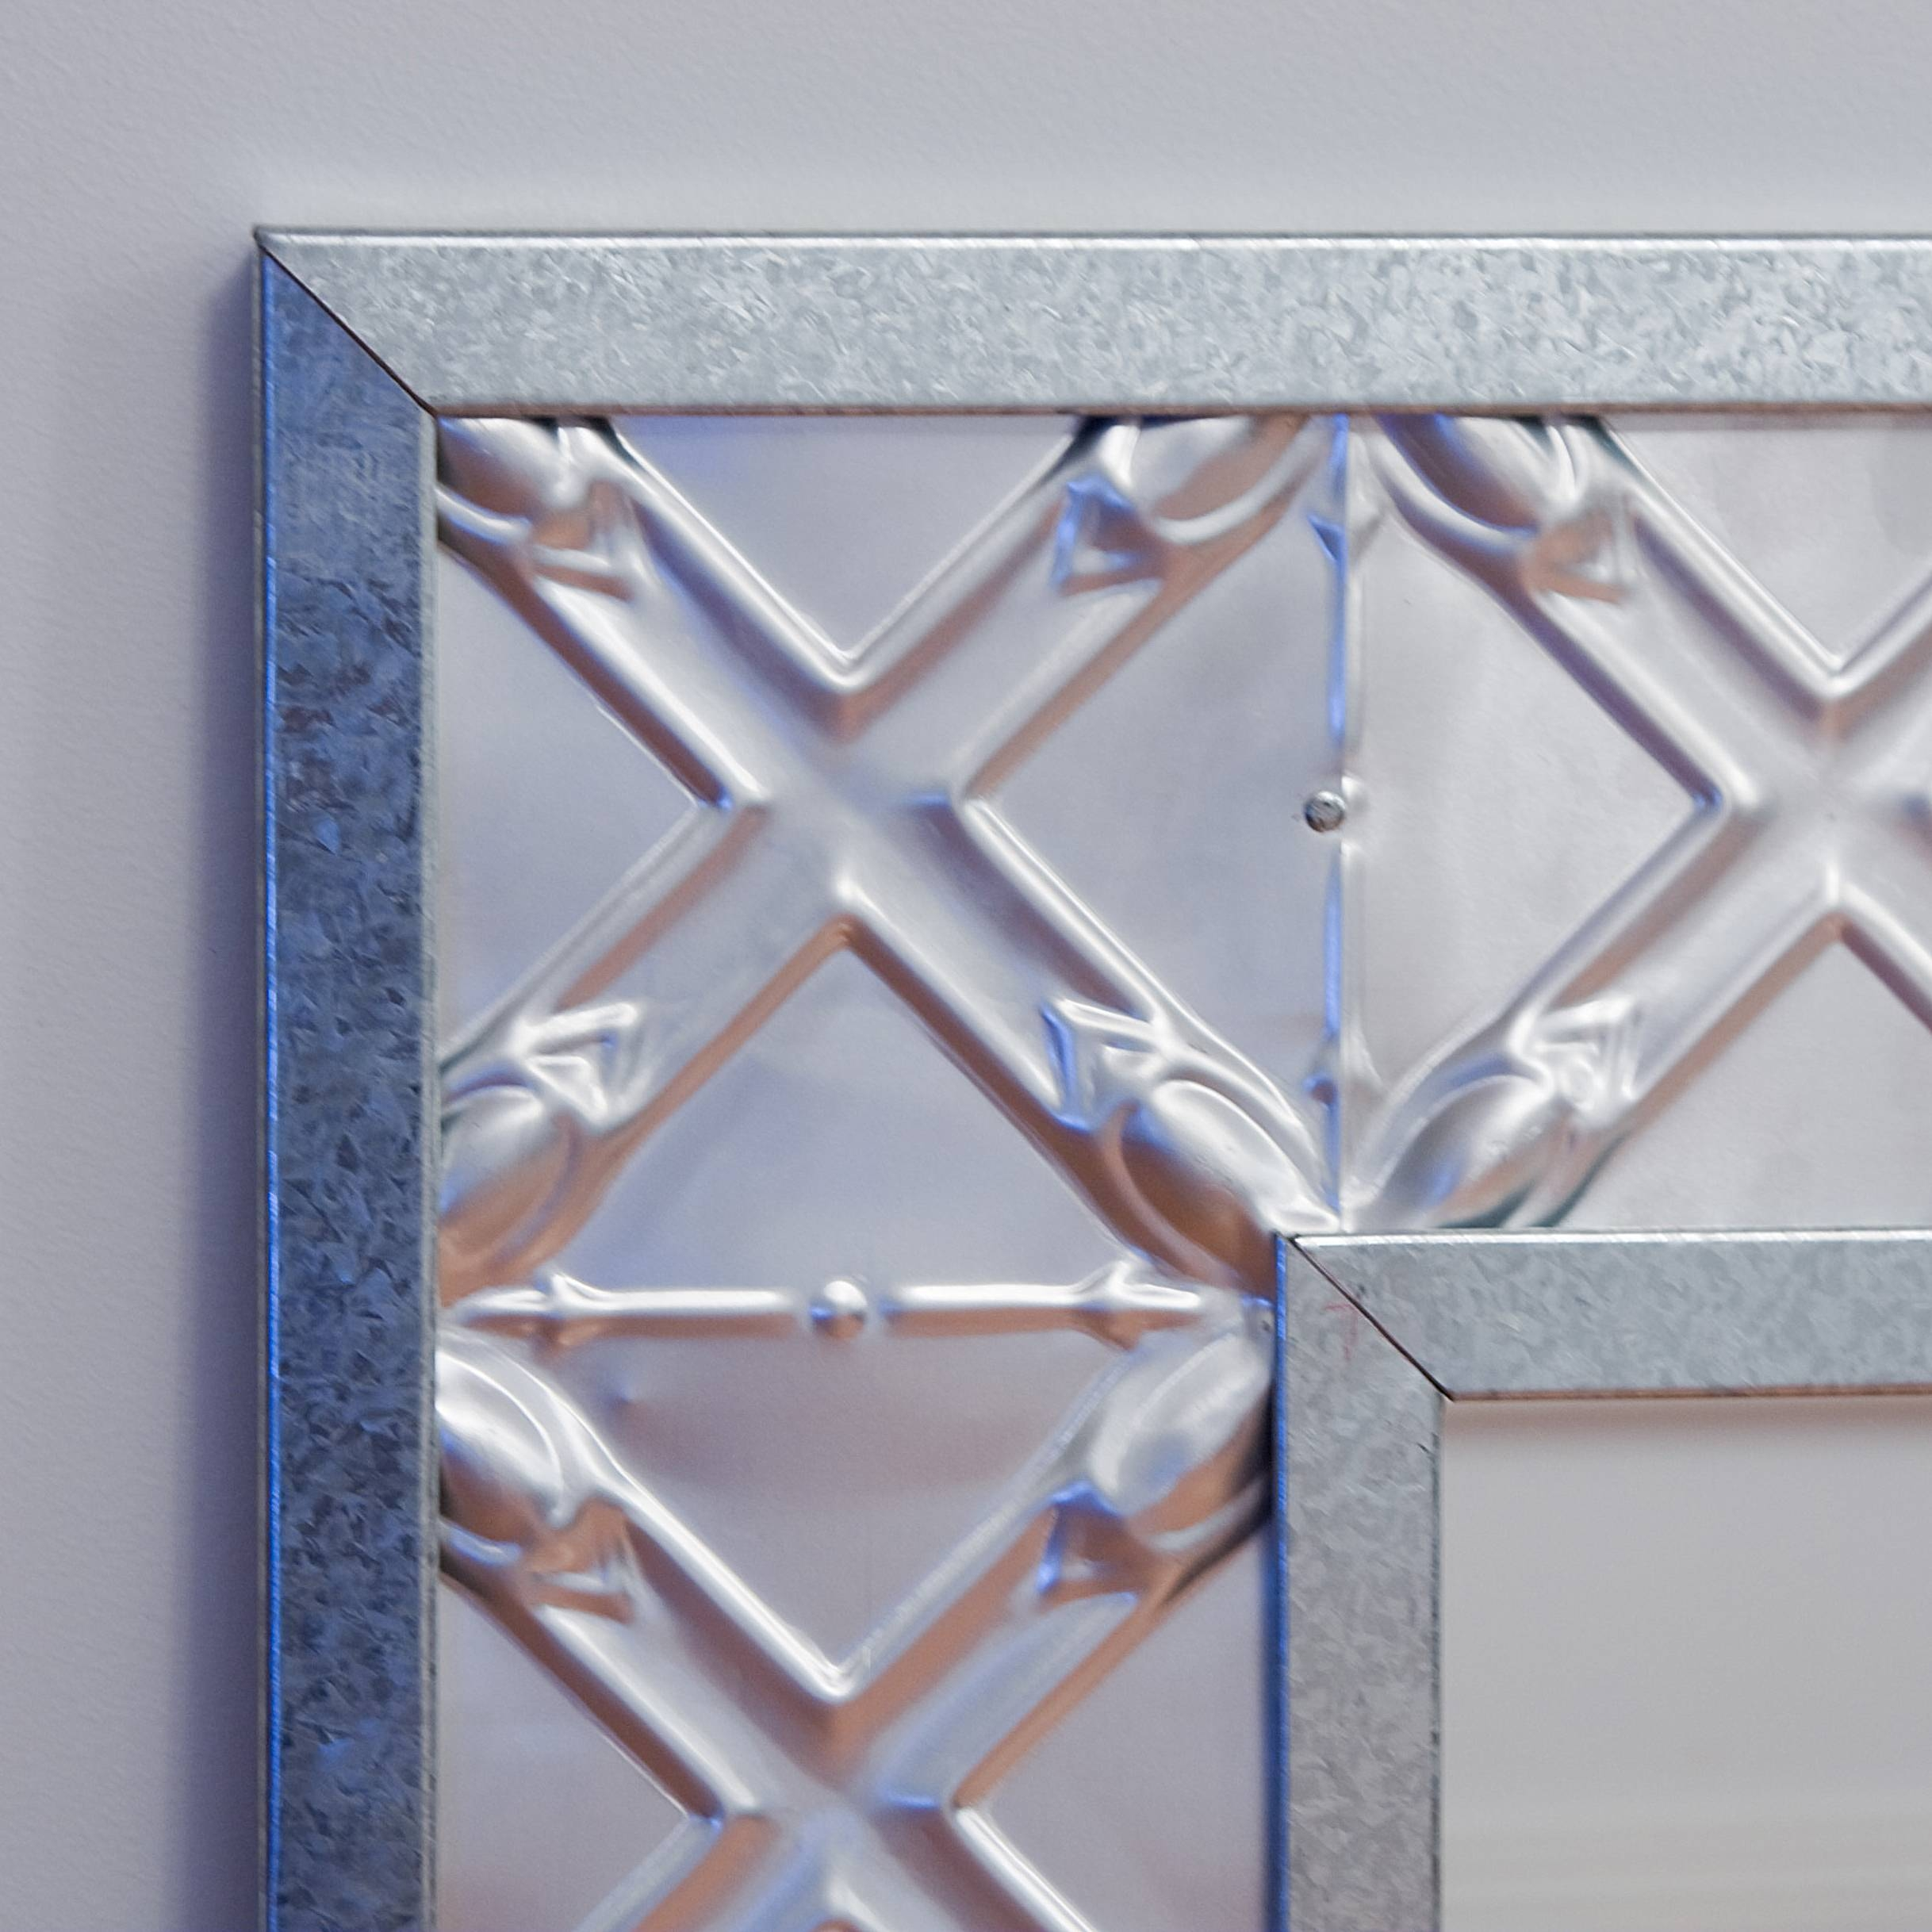 Pressed Tin Mirrors intended for Pressed Tin Mirrors (Image 16 of 25)